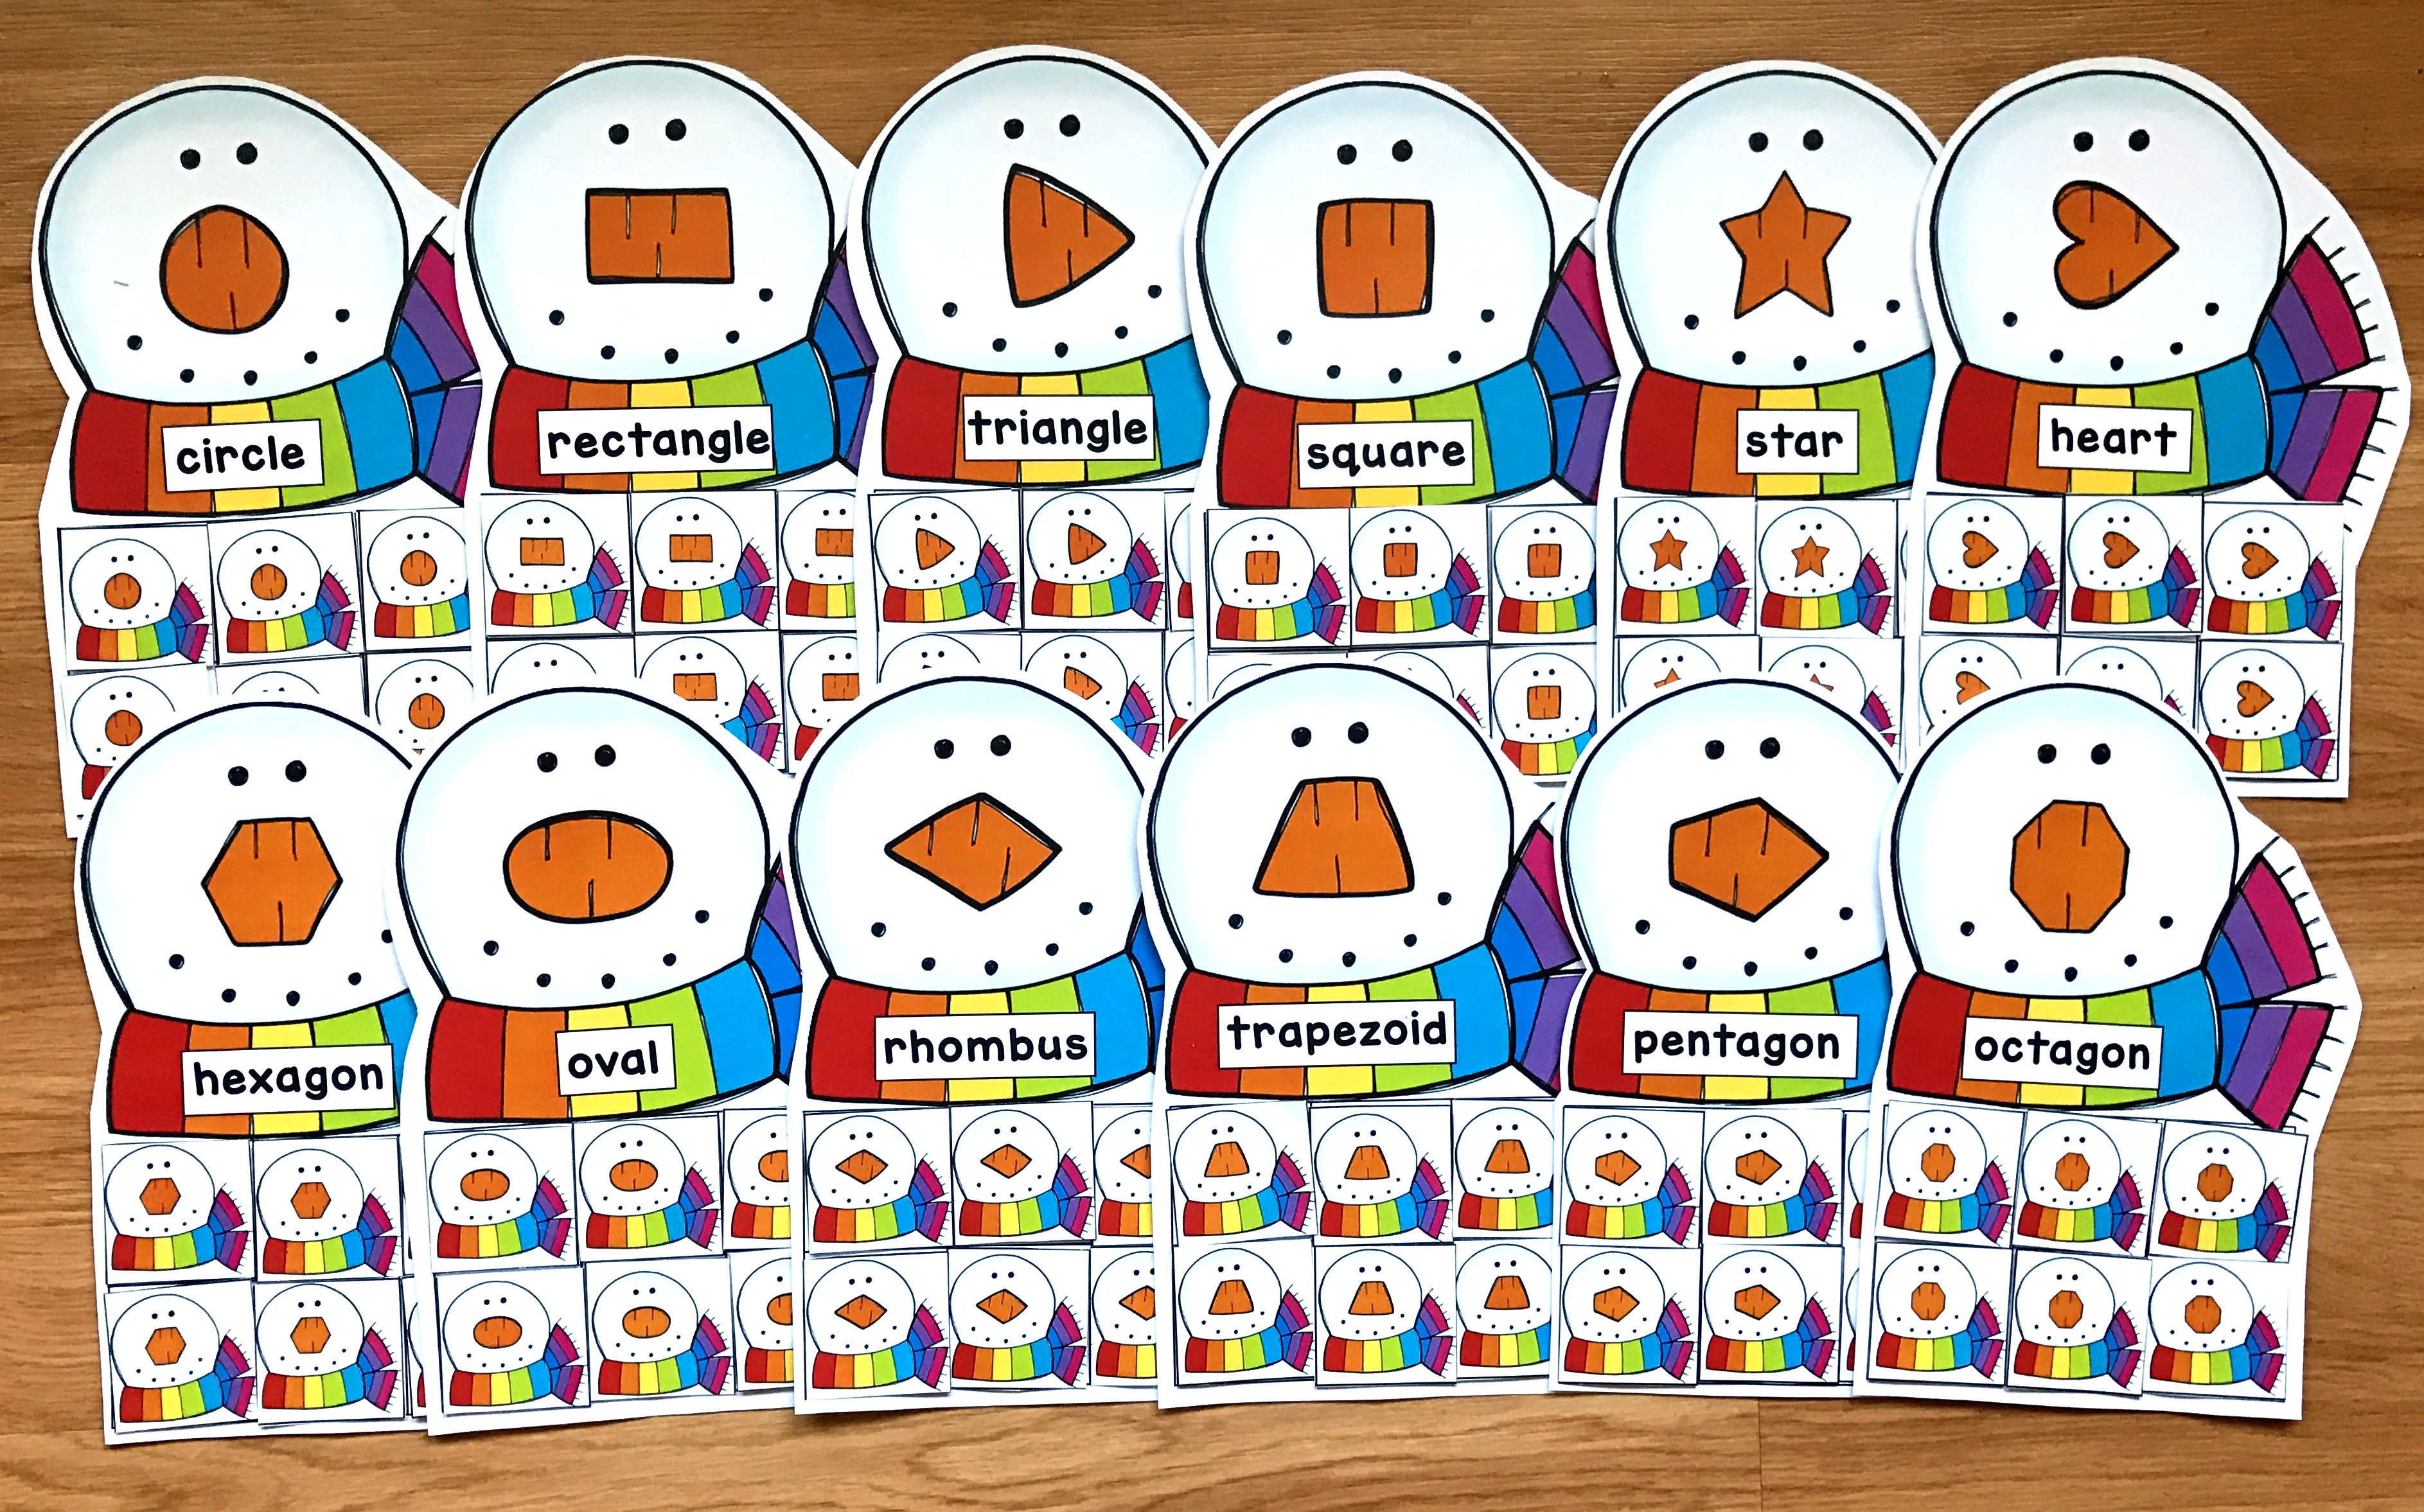 First Then Next Last Template also Cotton Ball Snowman likewise Clip Art Sequencing Cards Clipart moreover Img likewise Life Cycle Of A Snowman. on snowman sequencing